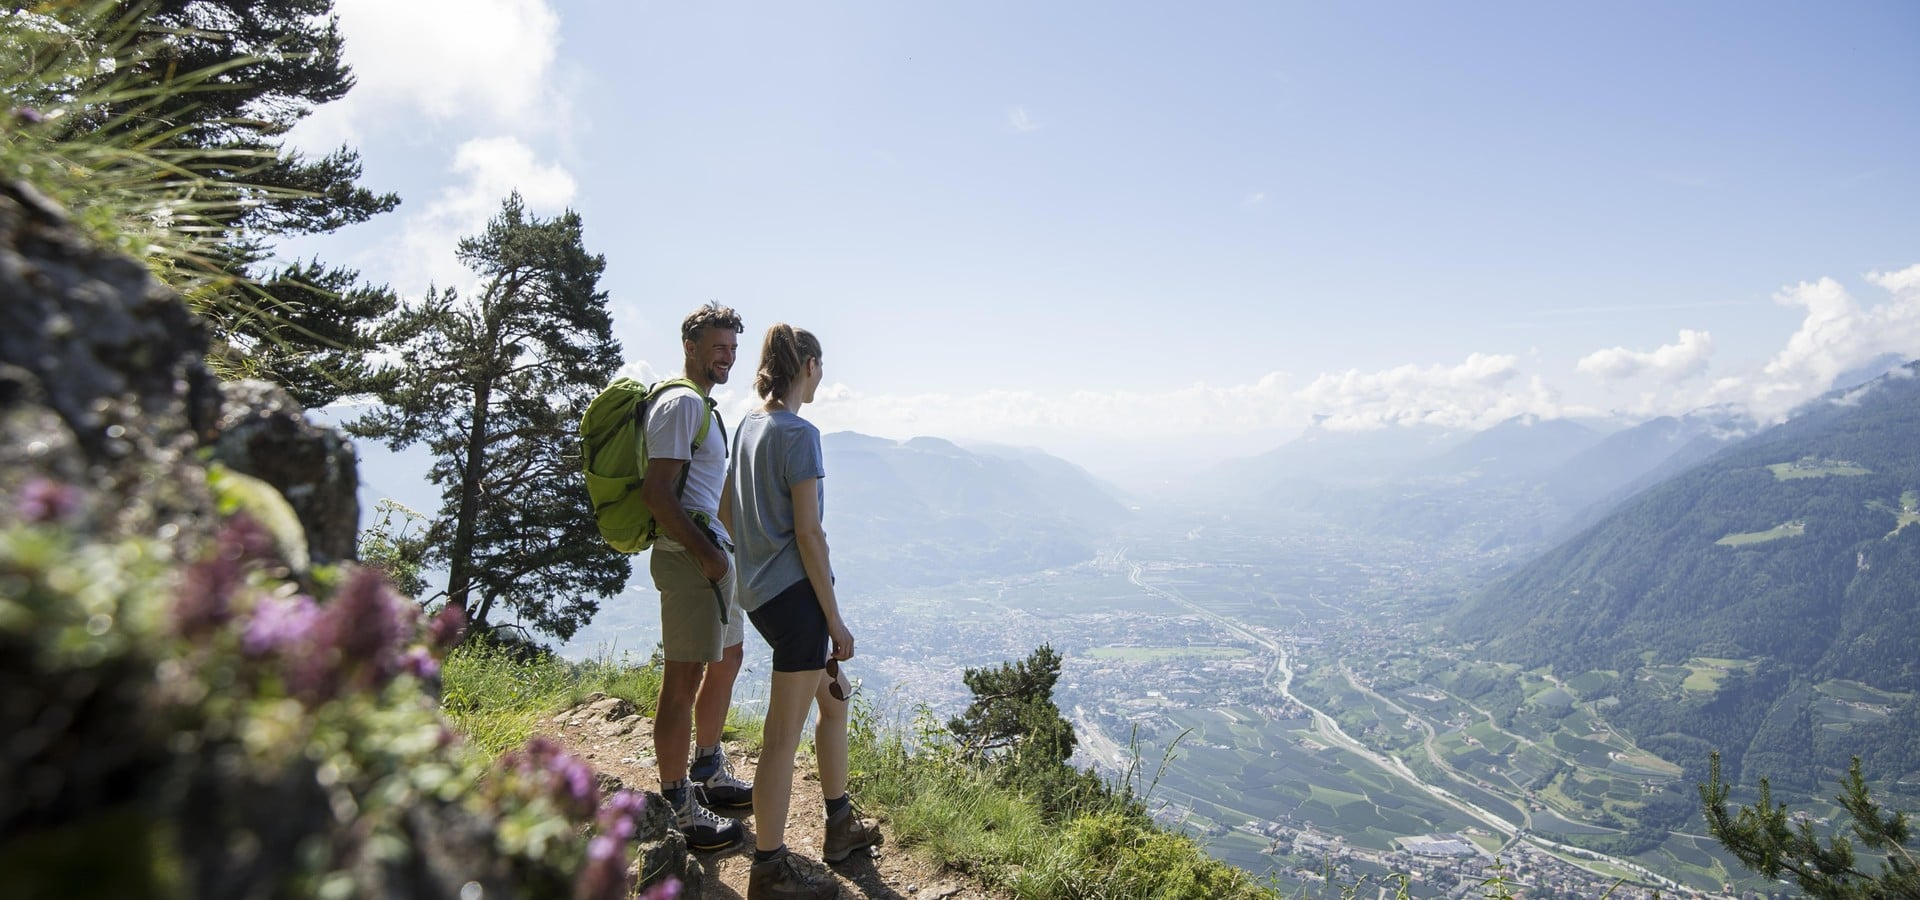 HIKING HAPPINESS: ON YOUR WAY TO FREEDOM